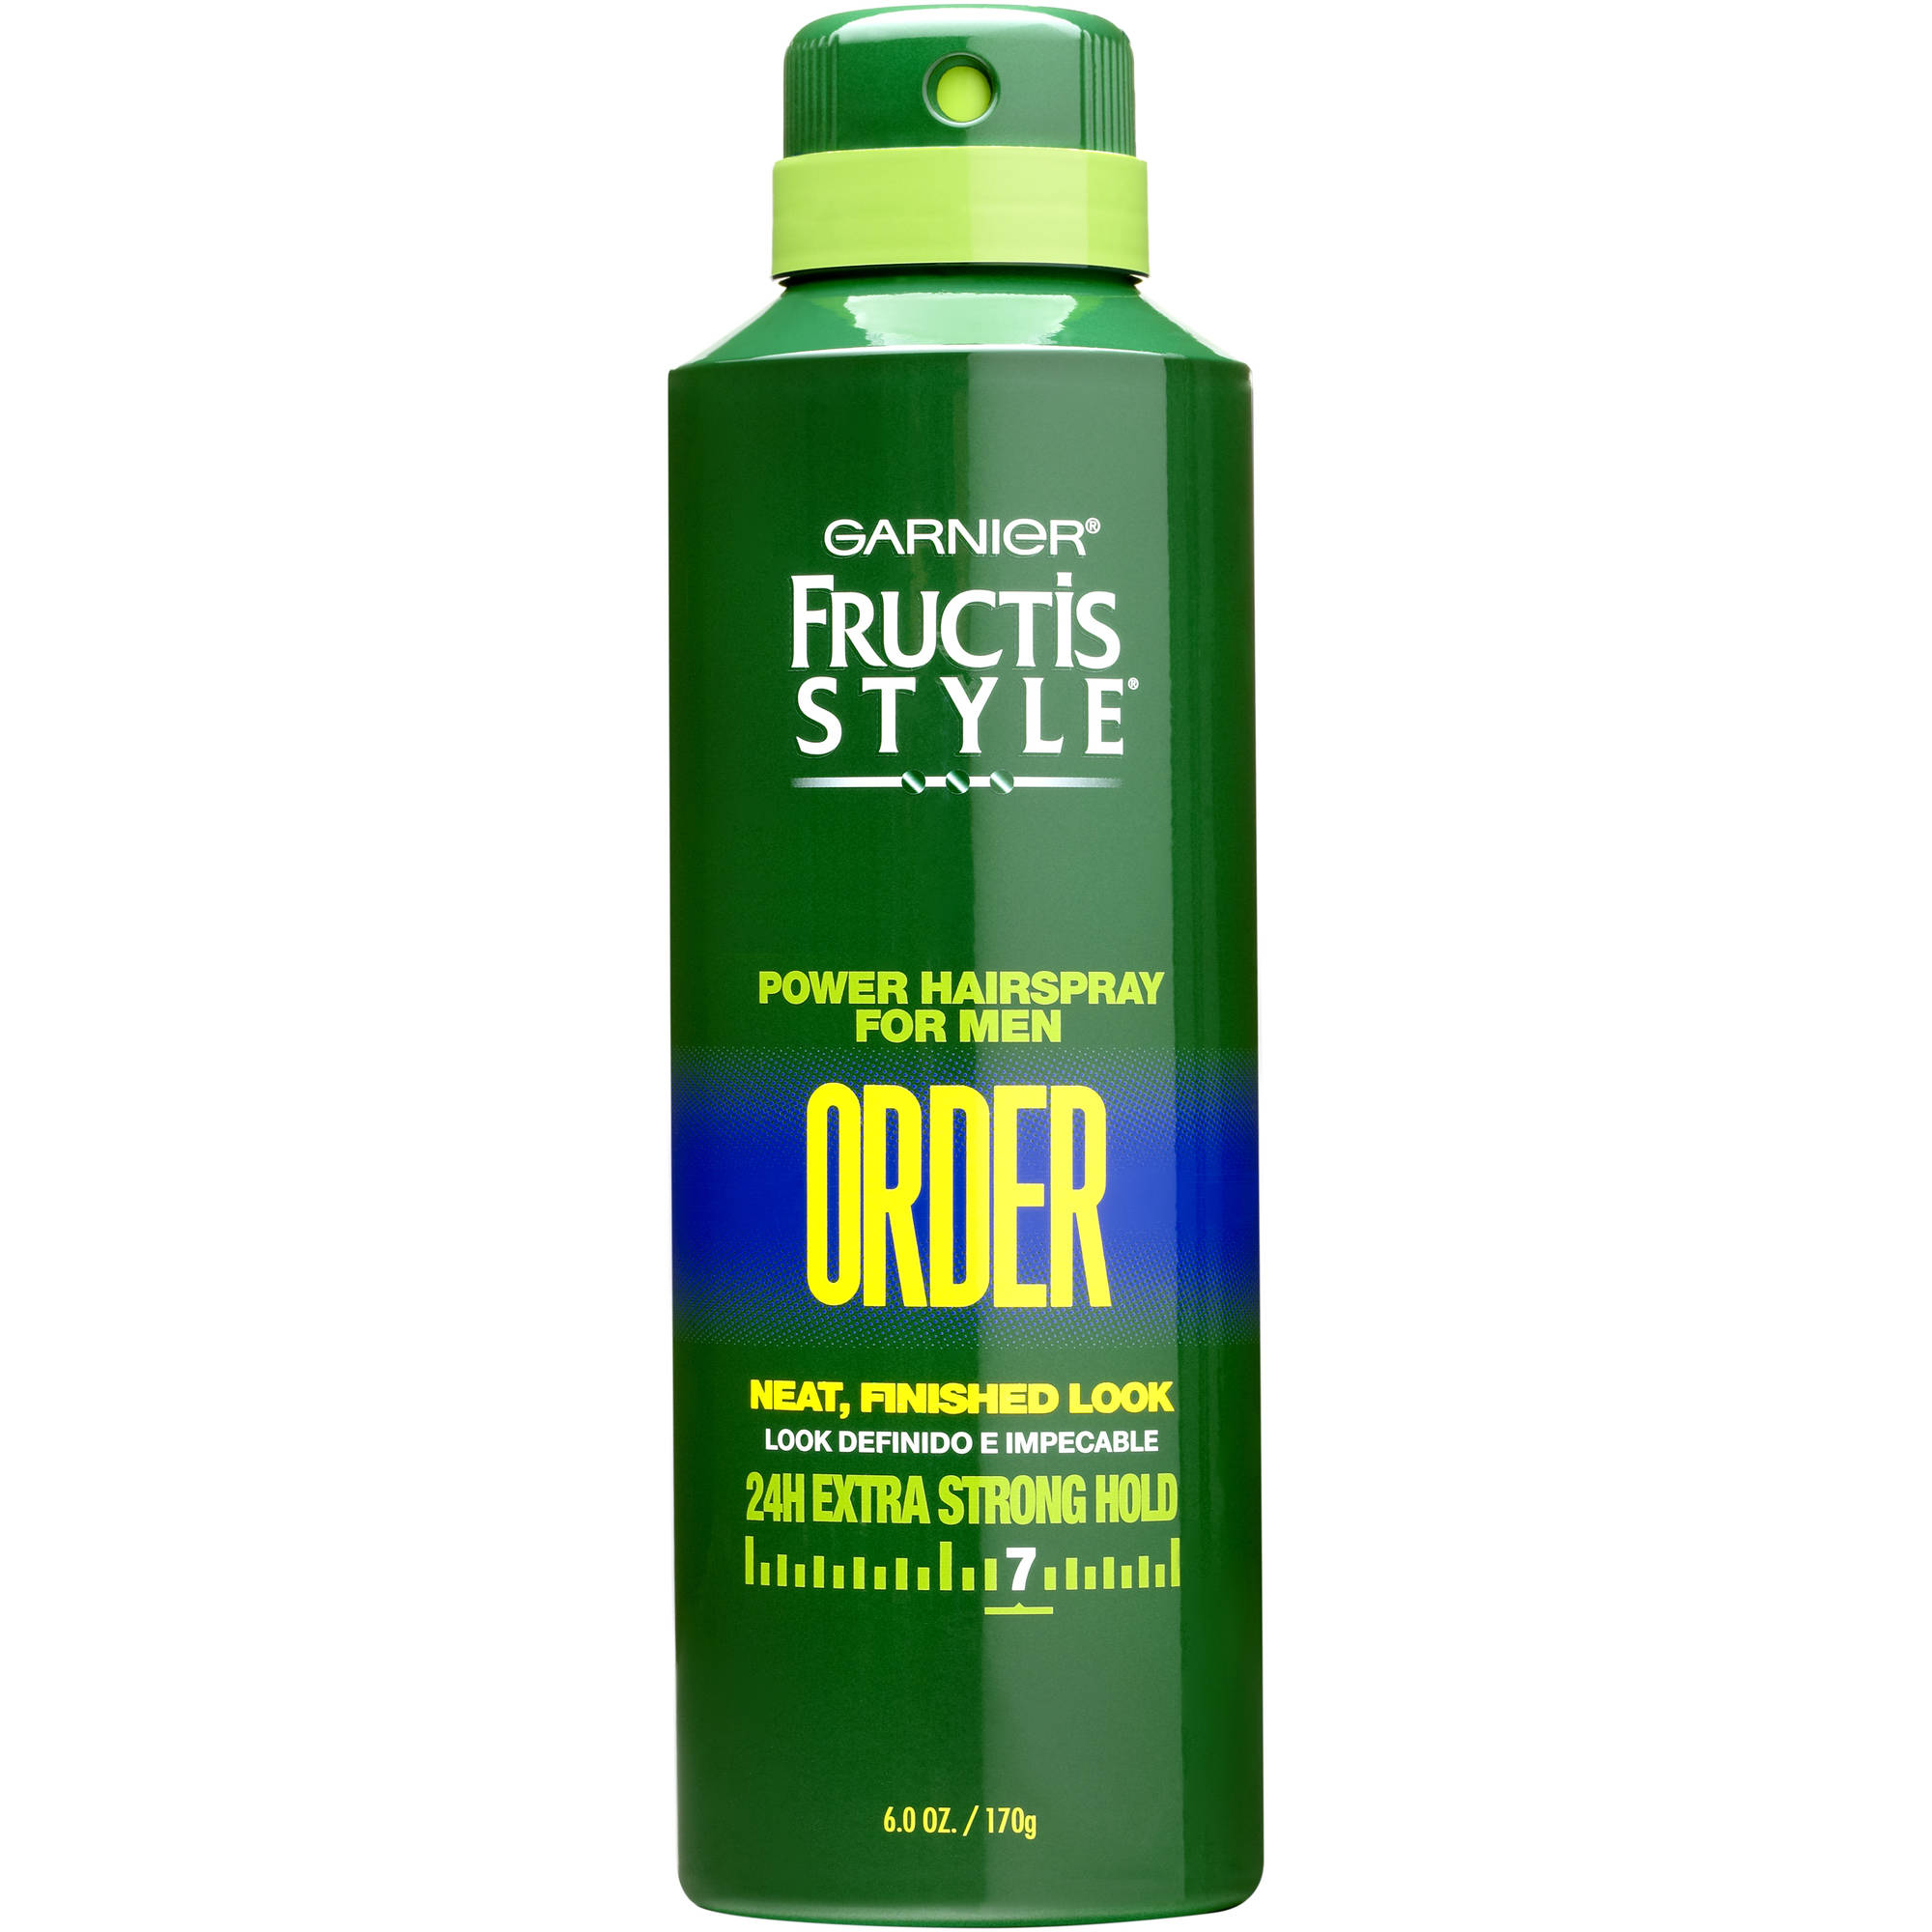 Fructis Style Power Hair Spray For Men Order Extra Strong Hold, 6 oz